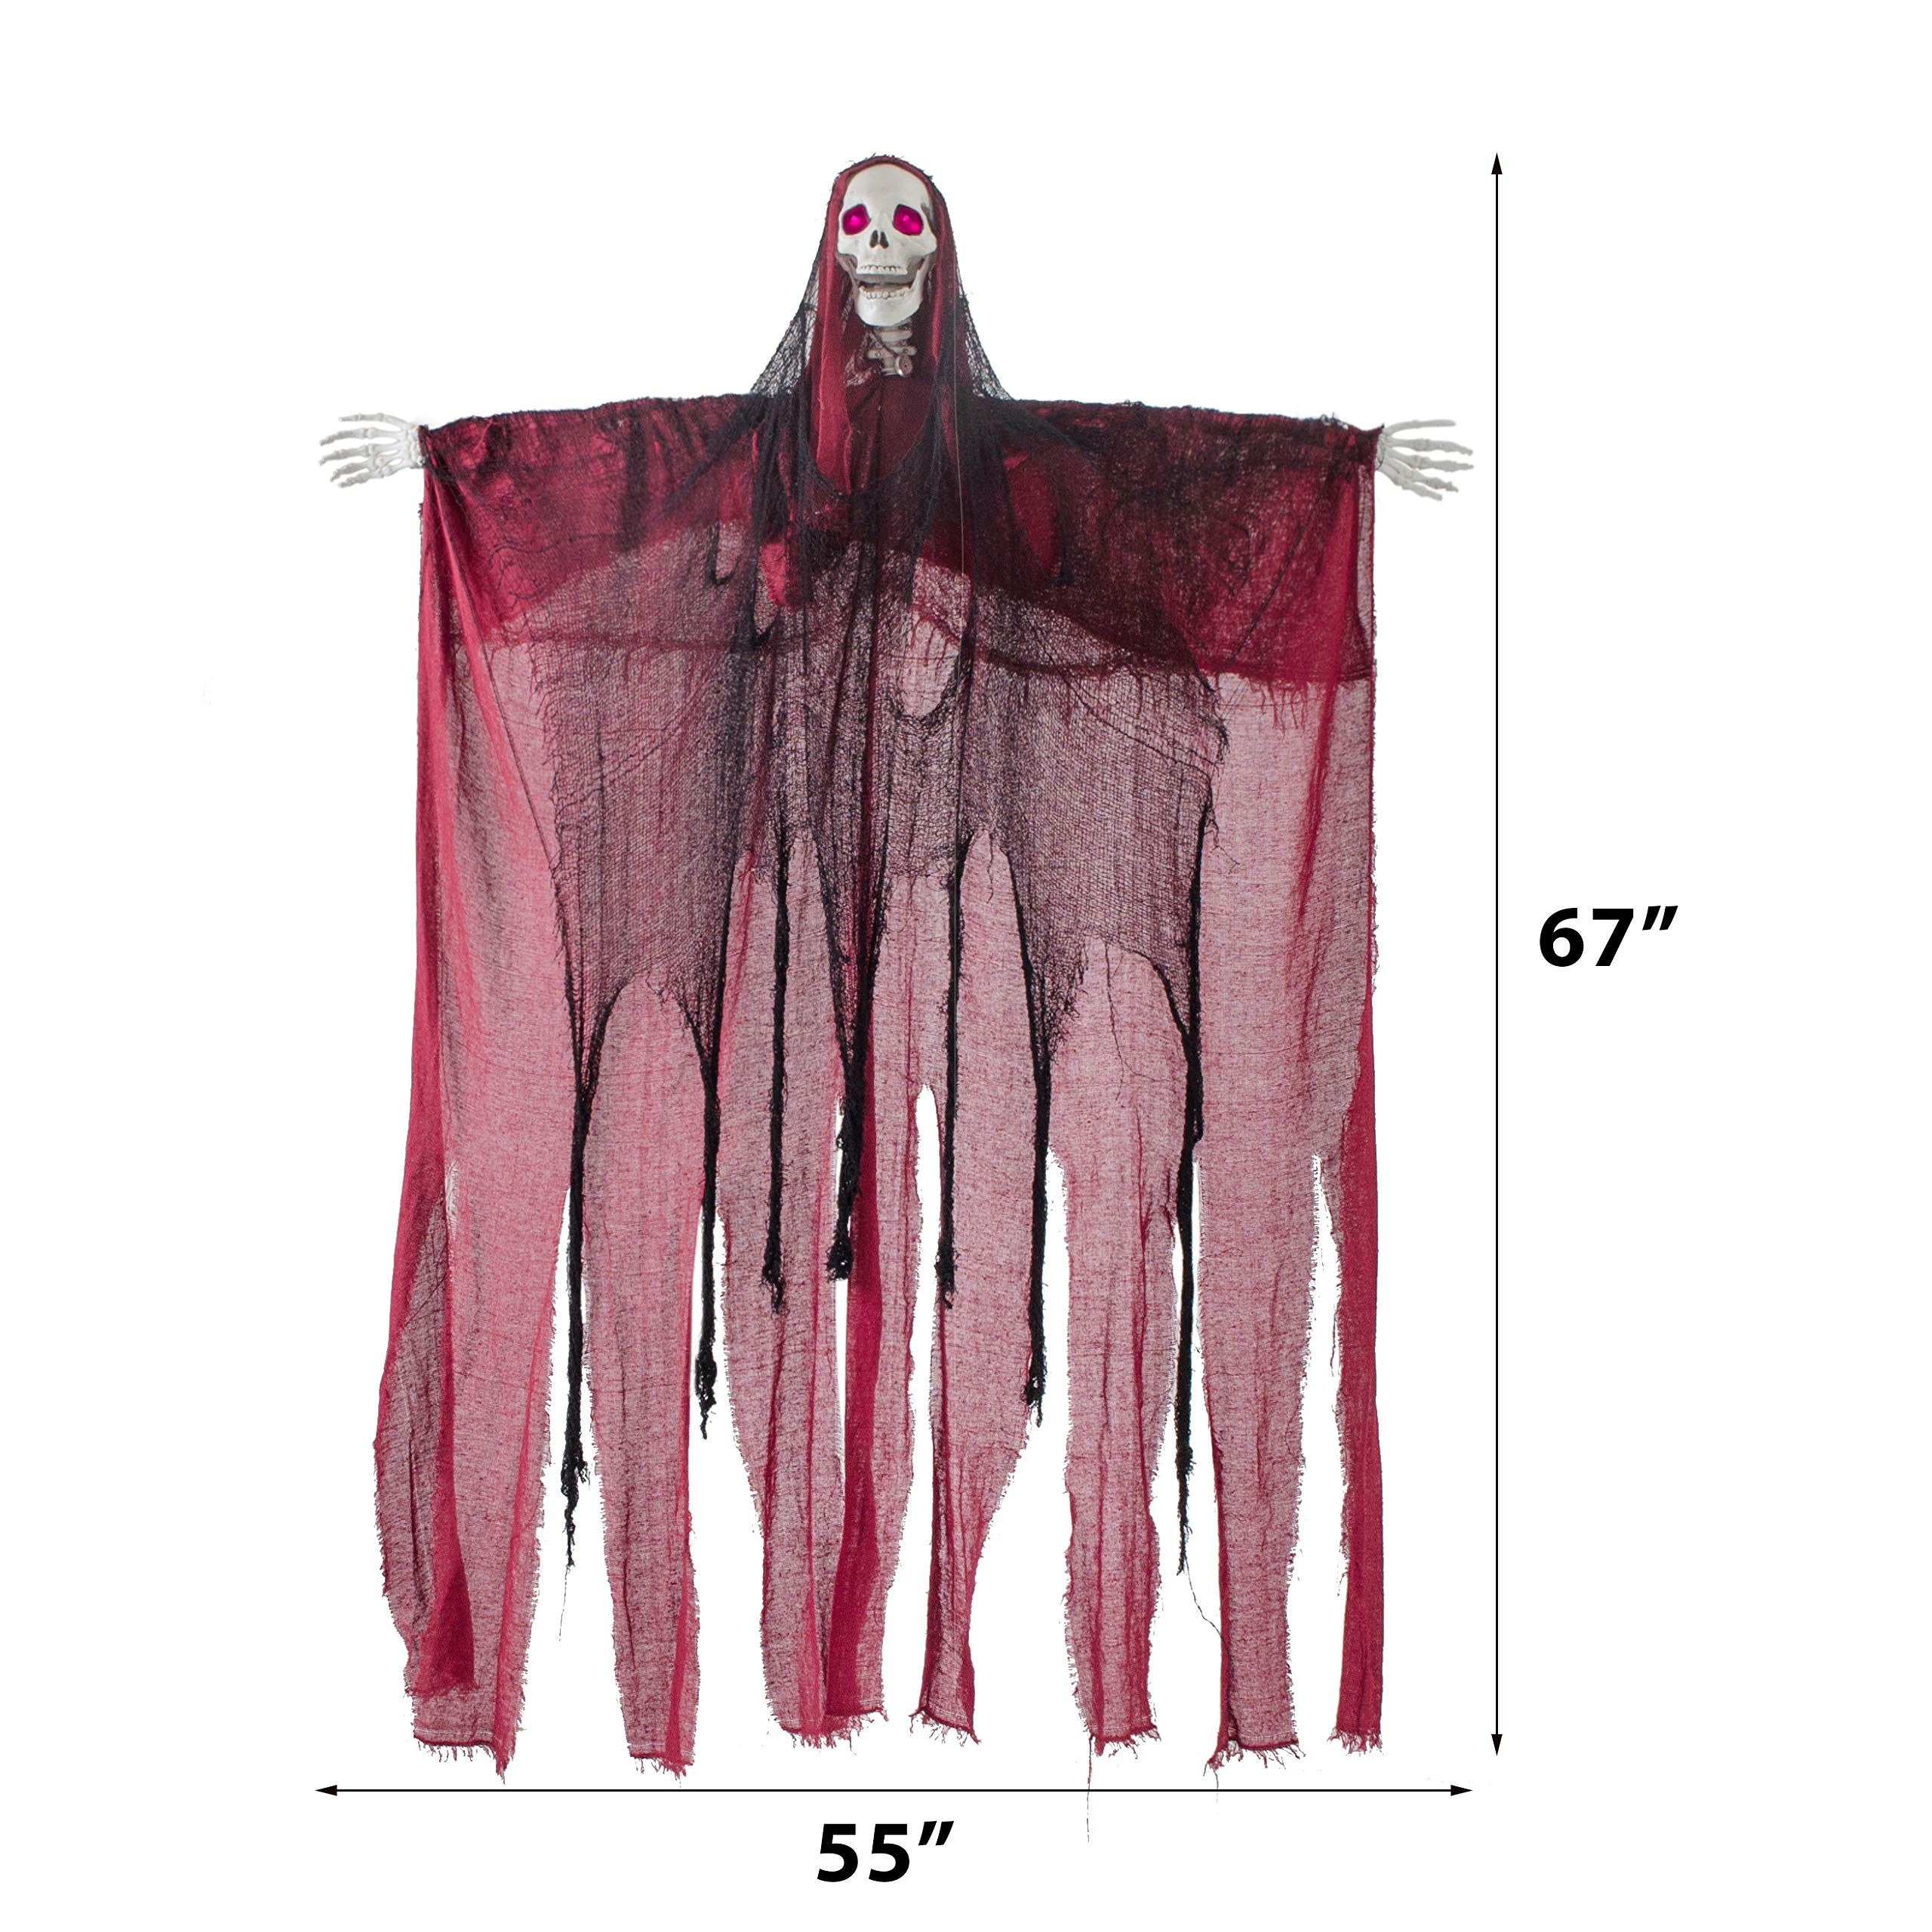 5 6 Ft Animated Hanging Screaming Ghost Decoration